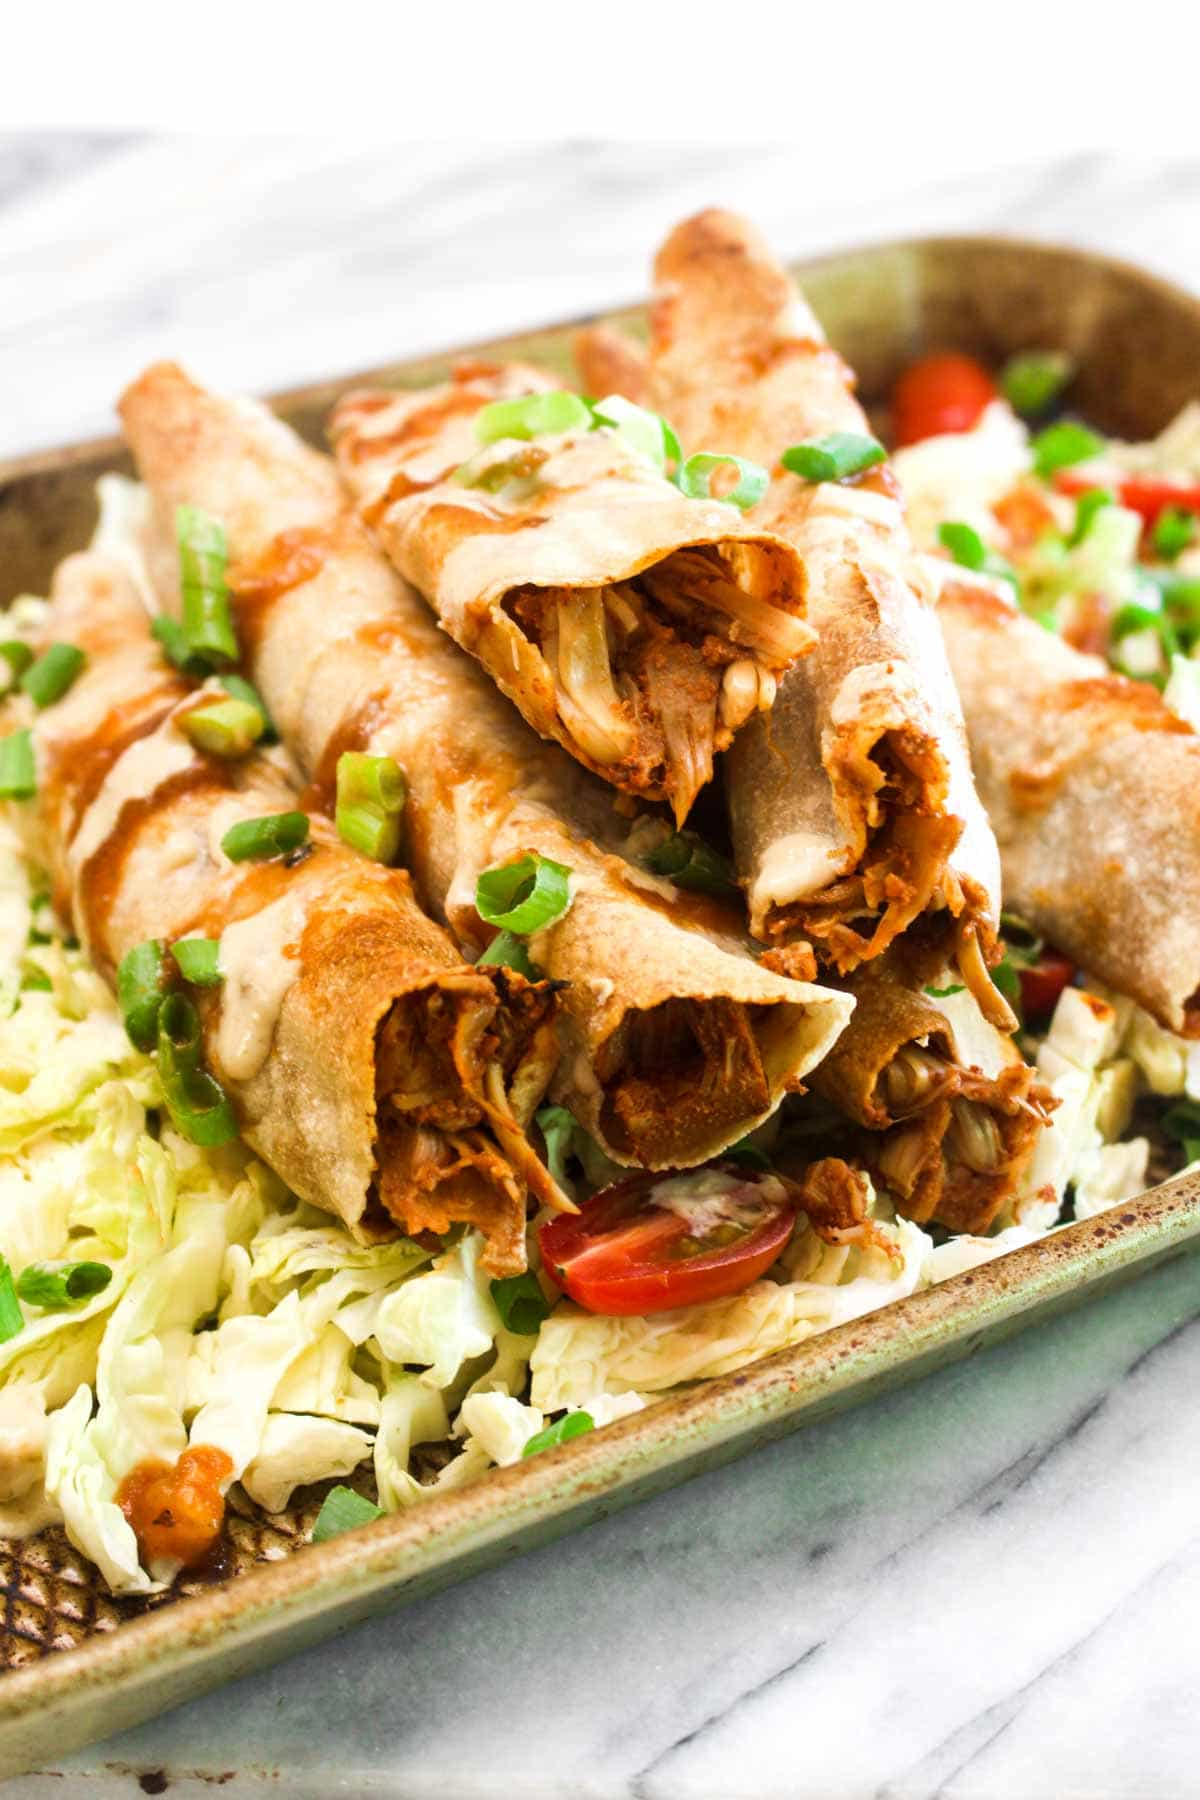 These Jackfruit Taquitos are filled with decadent jackfruit that looks and tastes like vegan pulled pork! This healthy gluten free recipe is baked rather than fried for crispy exteriors without any of the guilt. | CatchingSeeds.com